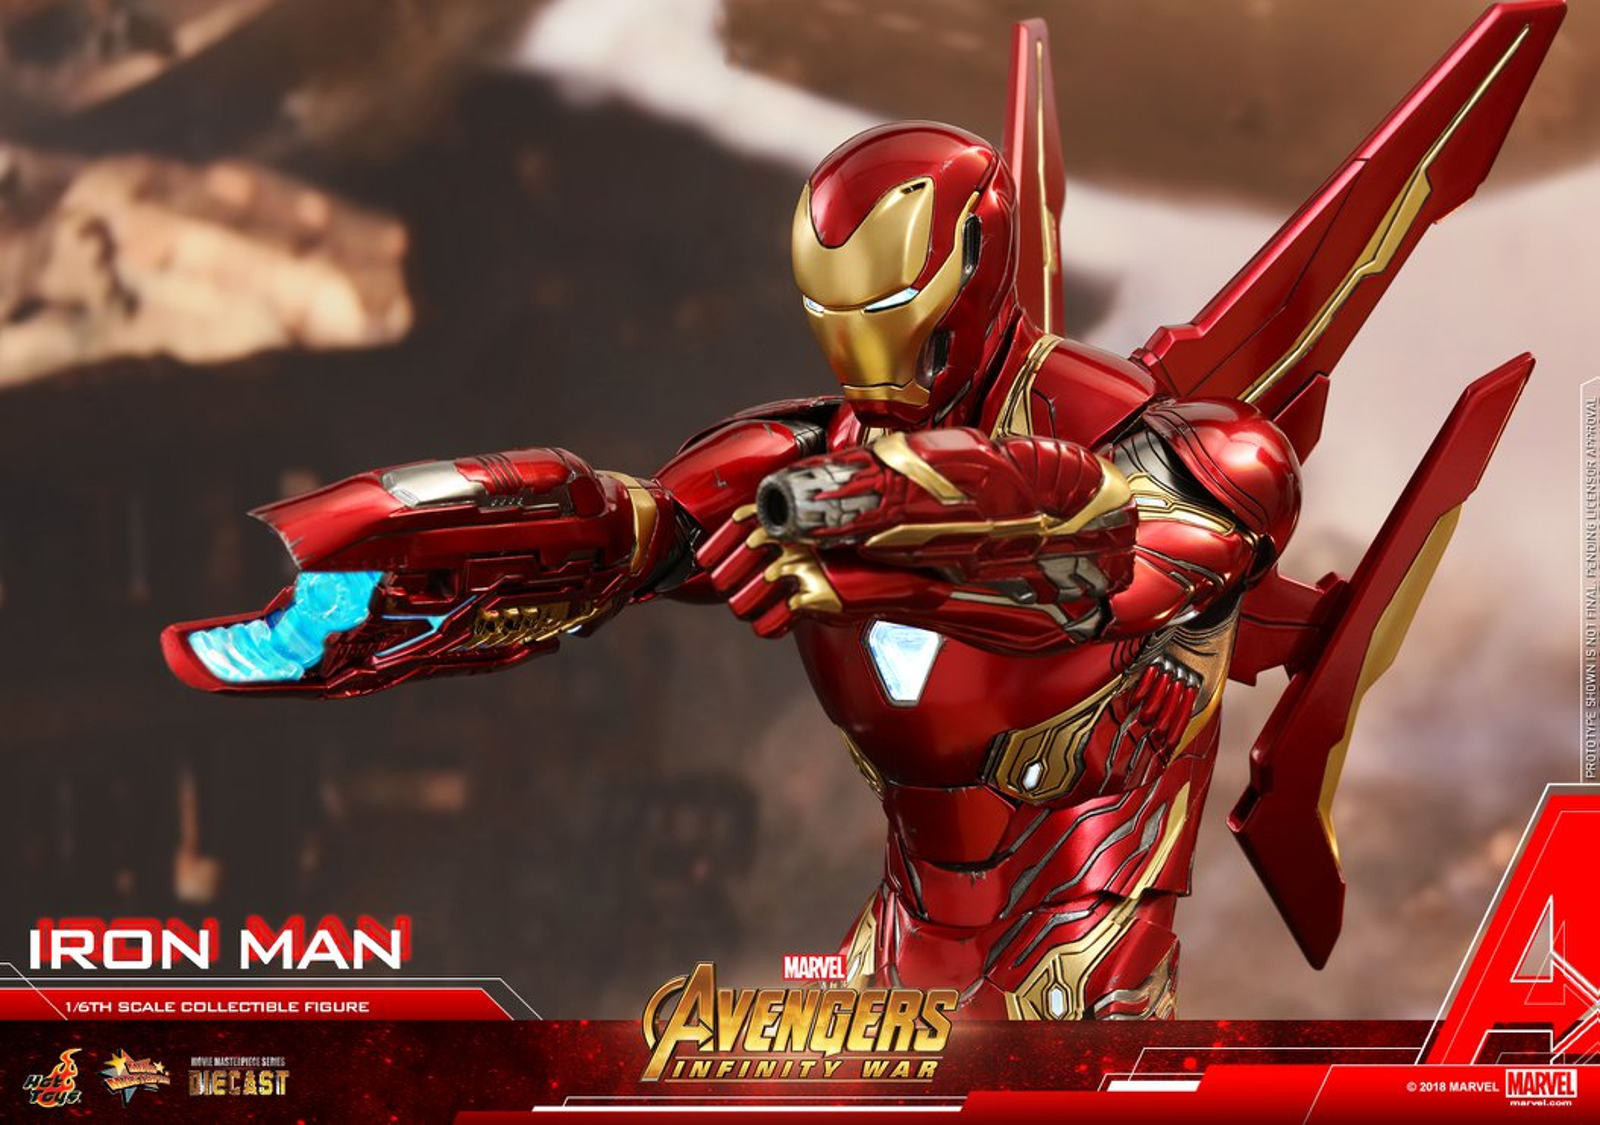 Iron Man from Avengers: Infinity War. Photo: Hot Toys.